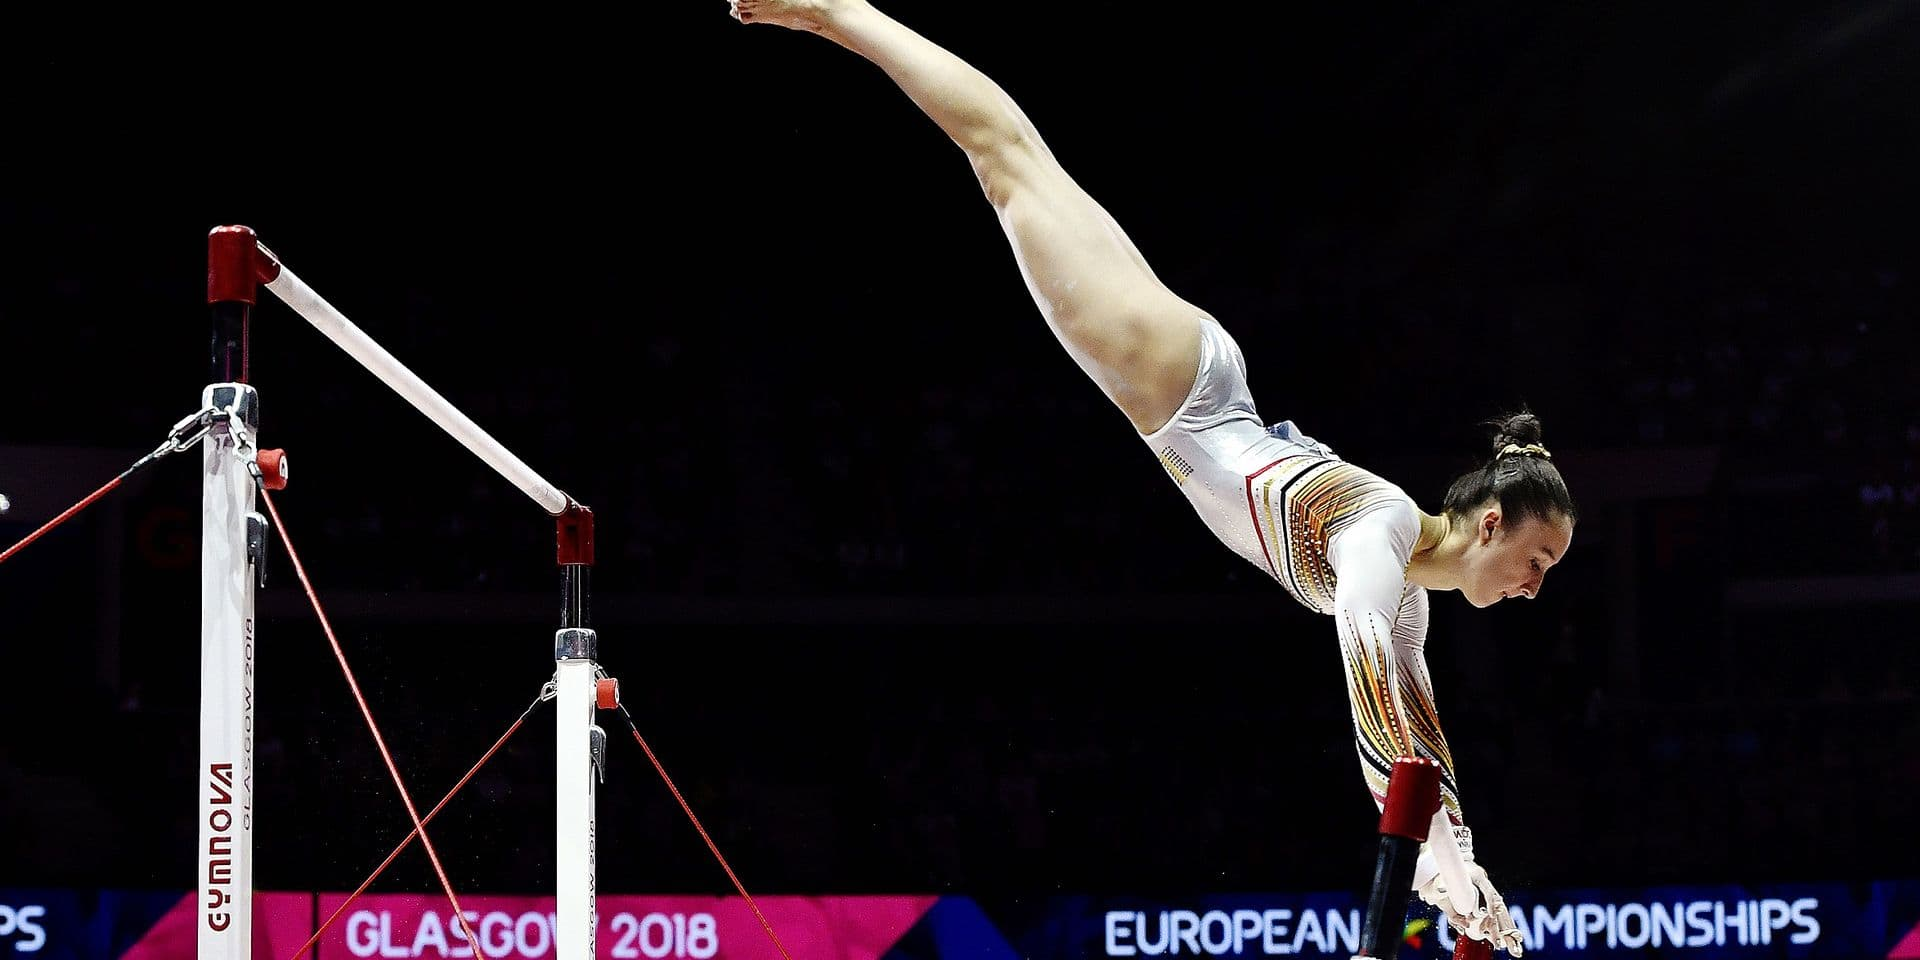 Belgian gymnast Nina Derwael pictured in action during the women's uneven bars final at the artistic gymnastics event at the European Championships, in Glasgow, Scotland, Sunday 05 August 2018. European championships of several sports will be held in Glasgow from 03 to 12 August. BELGA PHOTO ERIC LALMAND